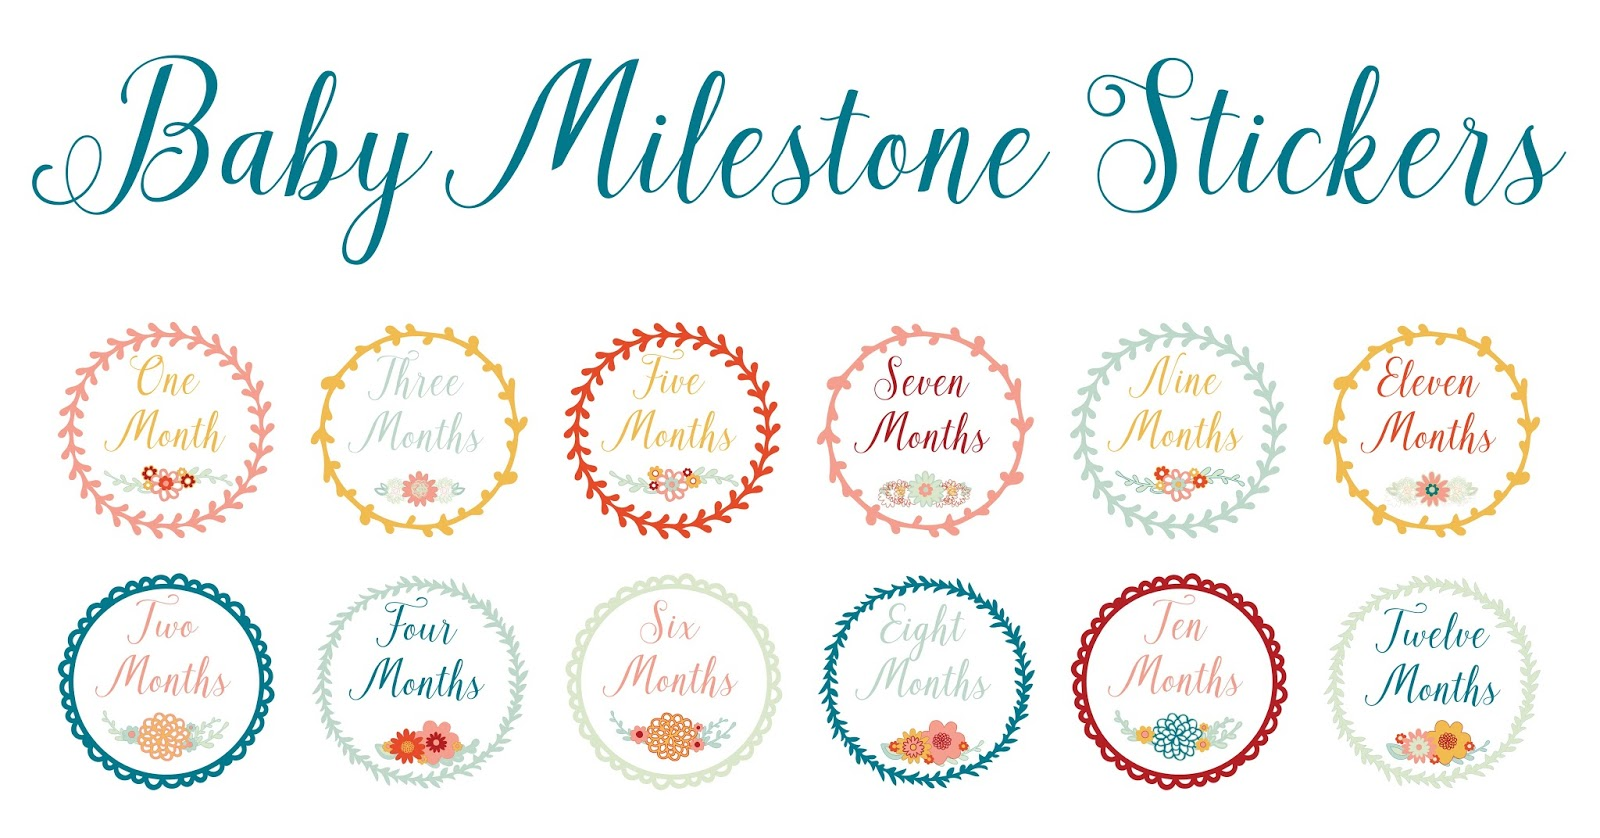 Silhouette Tutorial to Make Baby Monthly Milestone Stickers by Nadine Muir for Silhouette UK